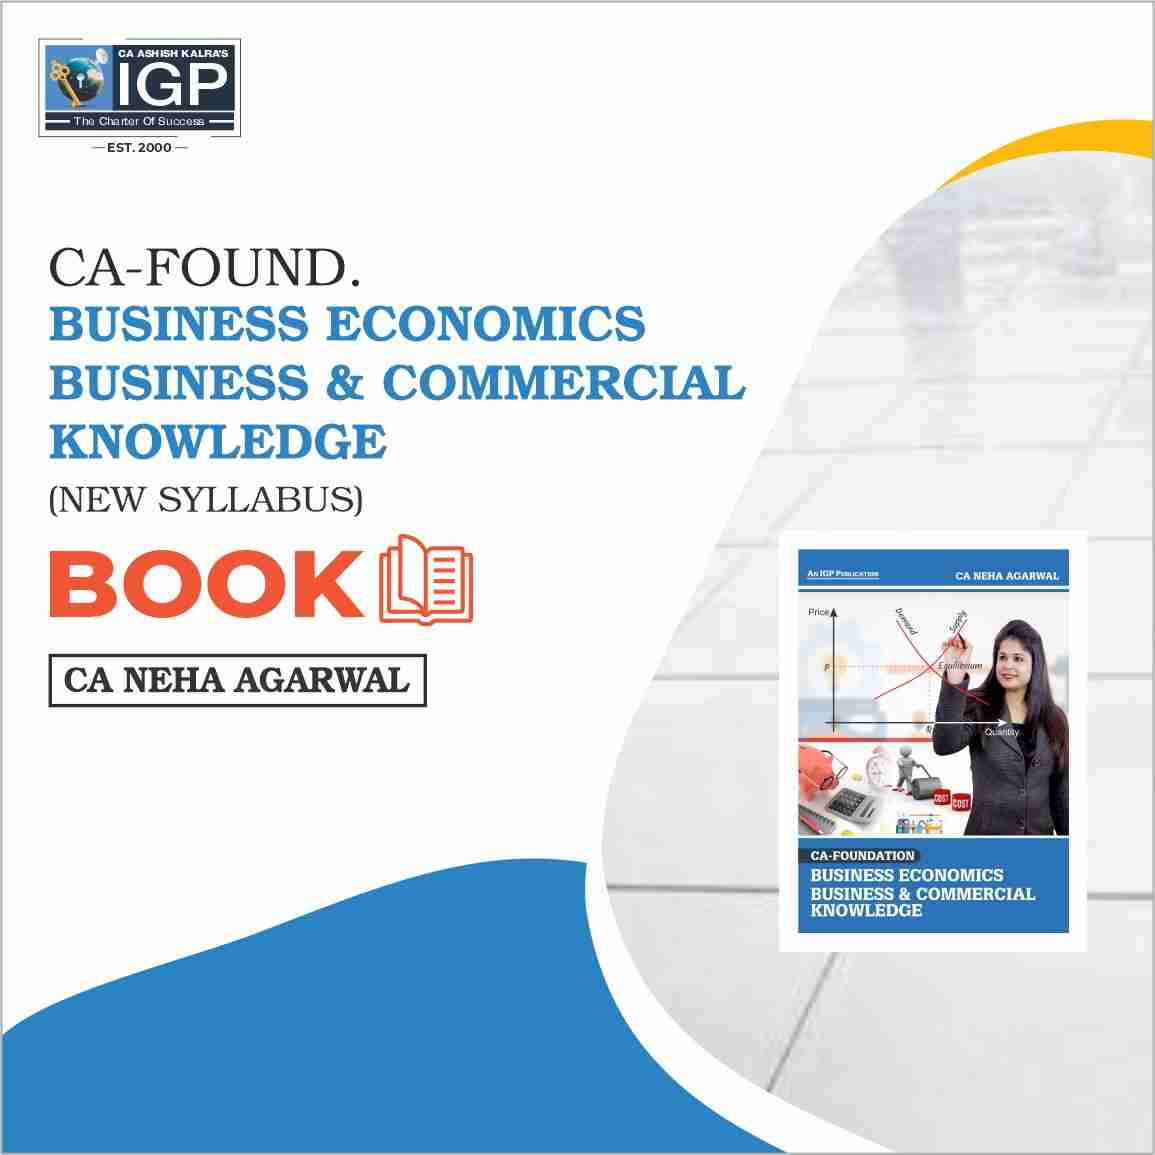 CA Foundation - Business Eco. & Business Commercial Knowledge-CA-Foundation-Business Economics and Business and Commercial Knowledge- CA Neha Agarwal